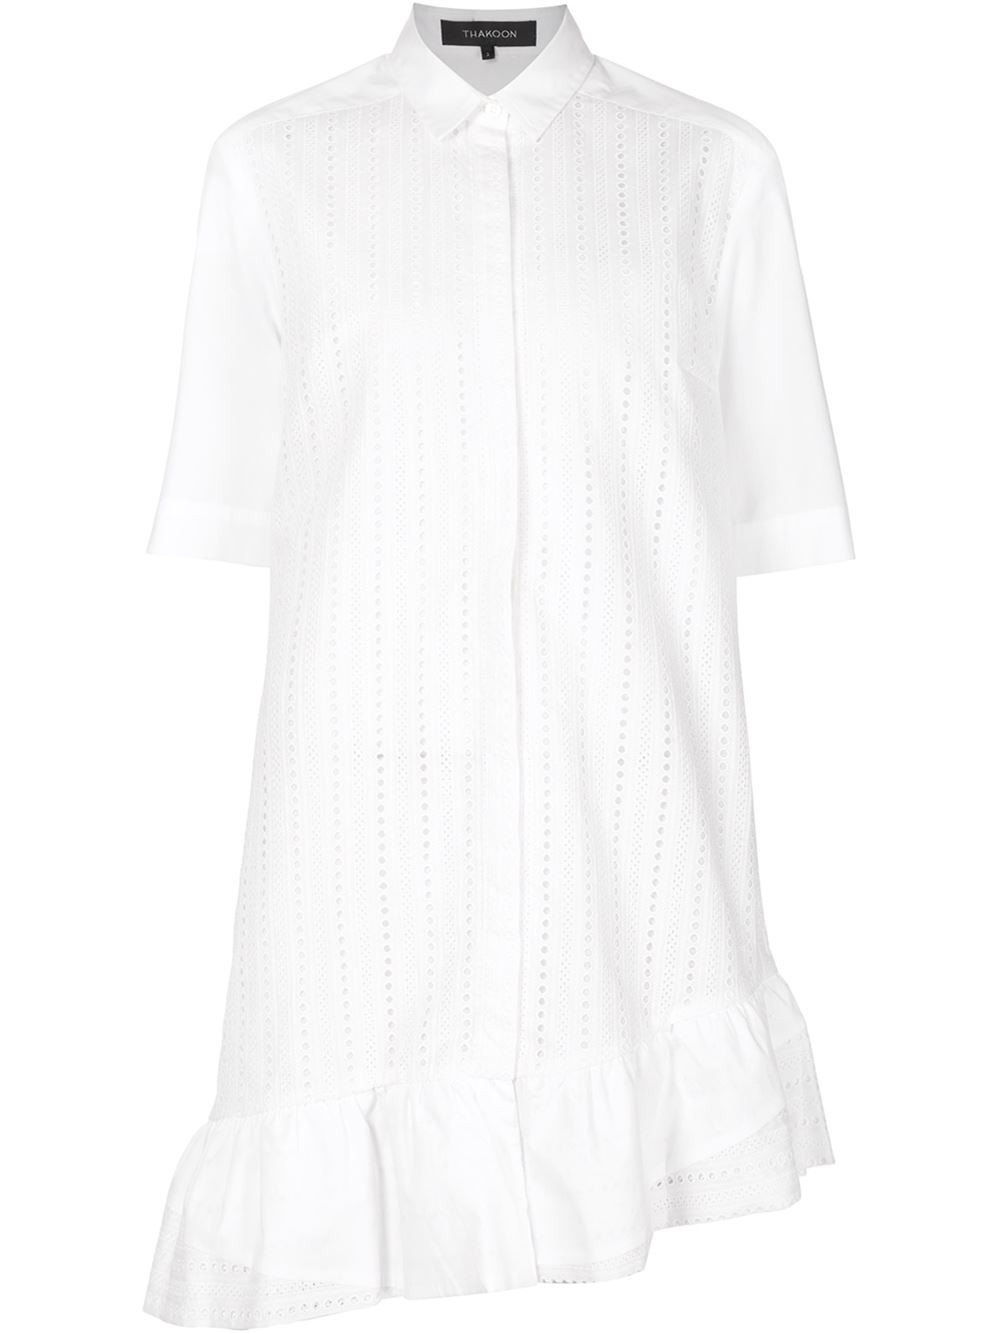 Thakoon Broderie Anglaise Ruffled Shirt Dress in White | Lyst